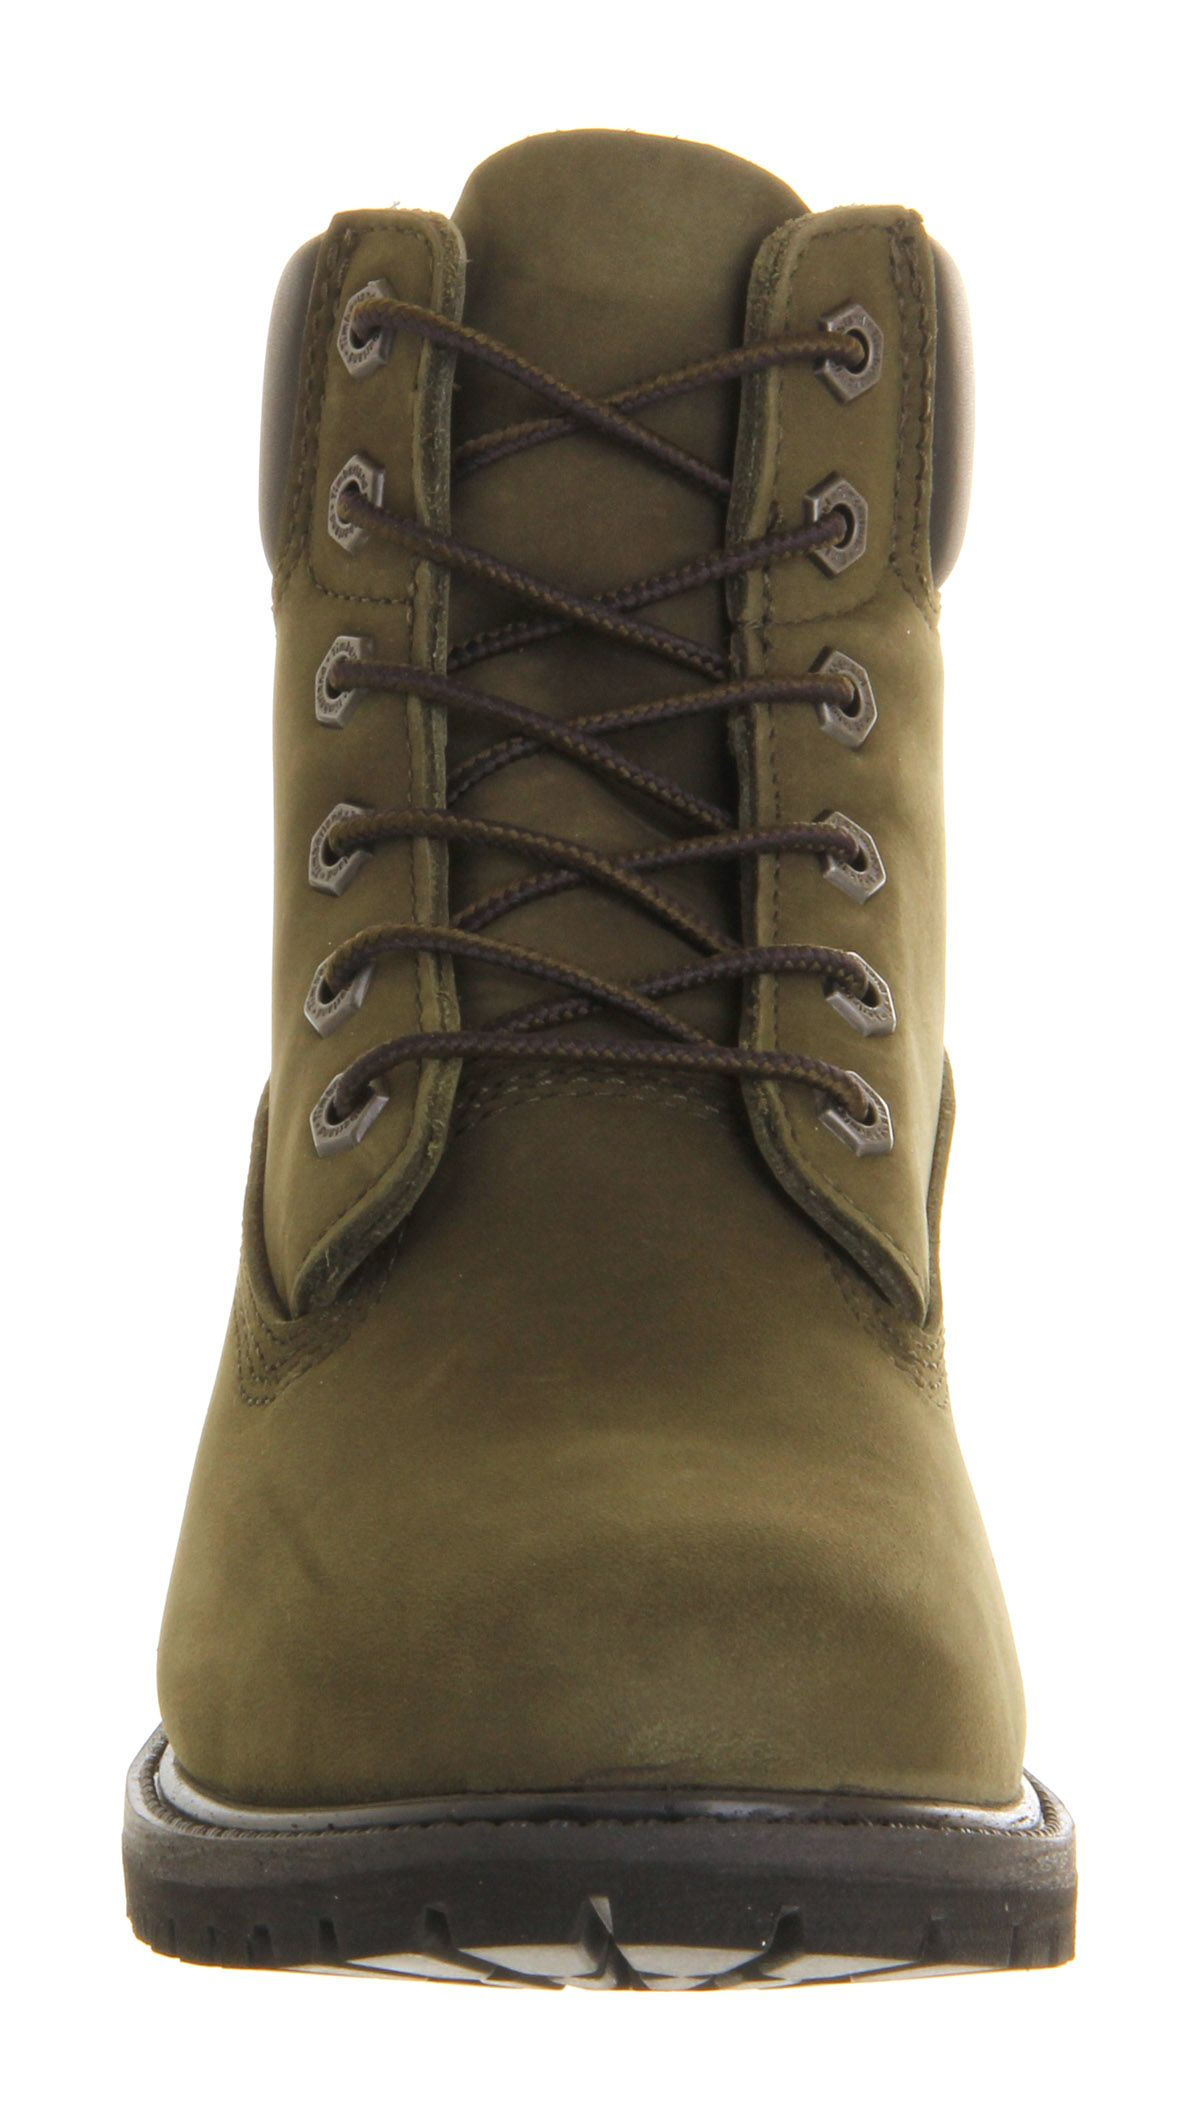 New Timberland Womens Jewels Pack Dark Green Gables 6 Inch Boots CA1KC6 | TOWER London